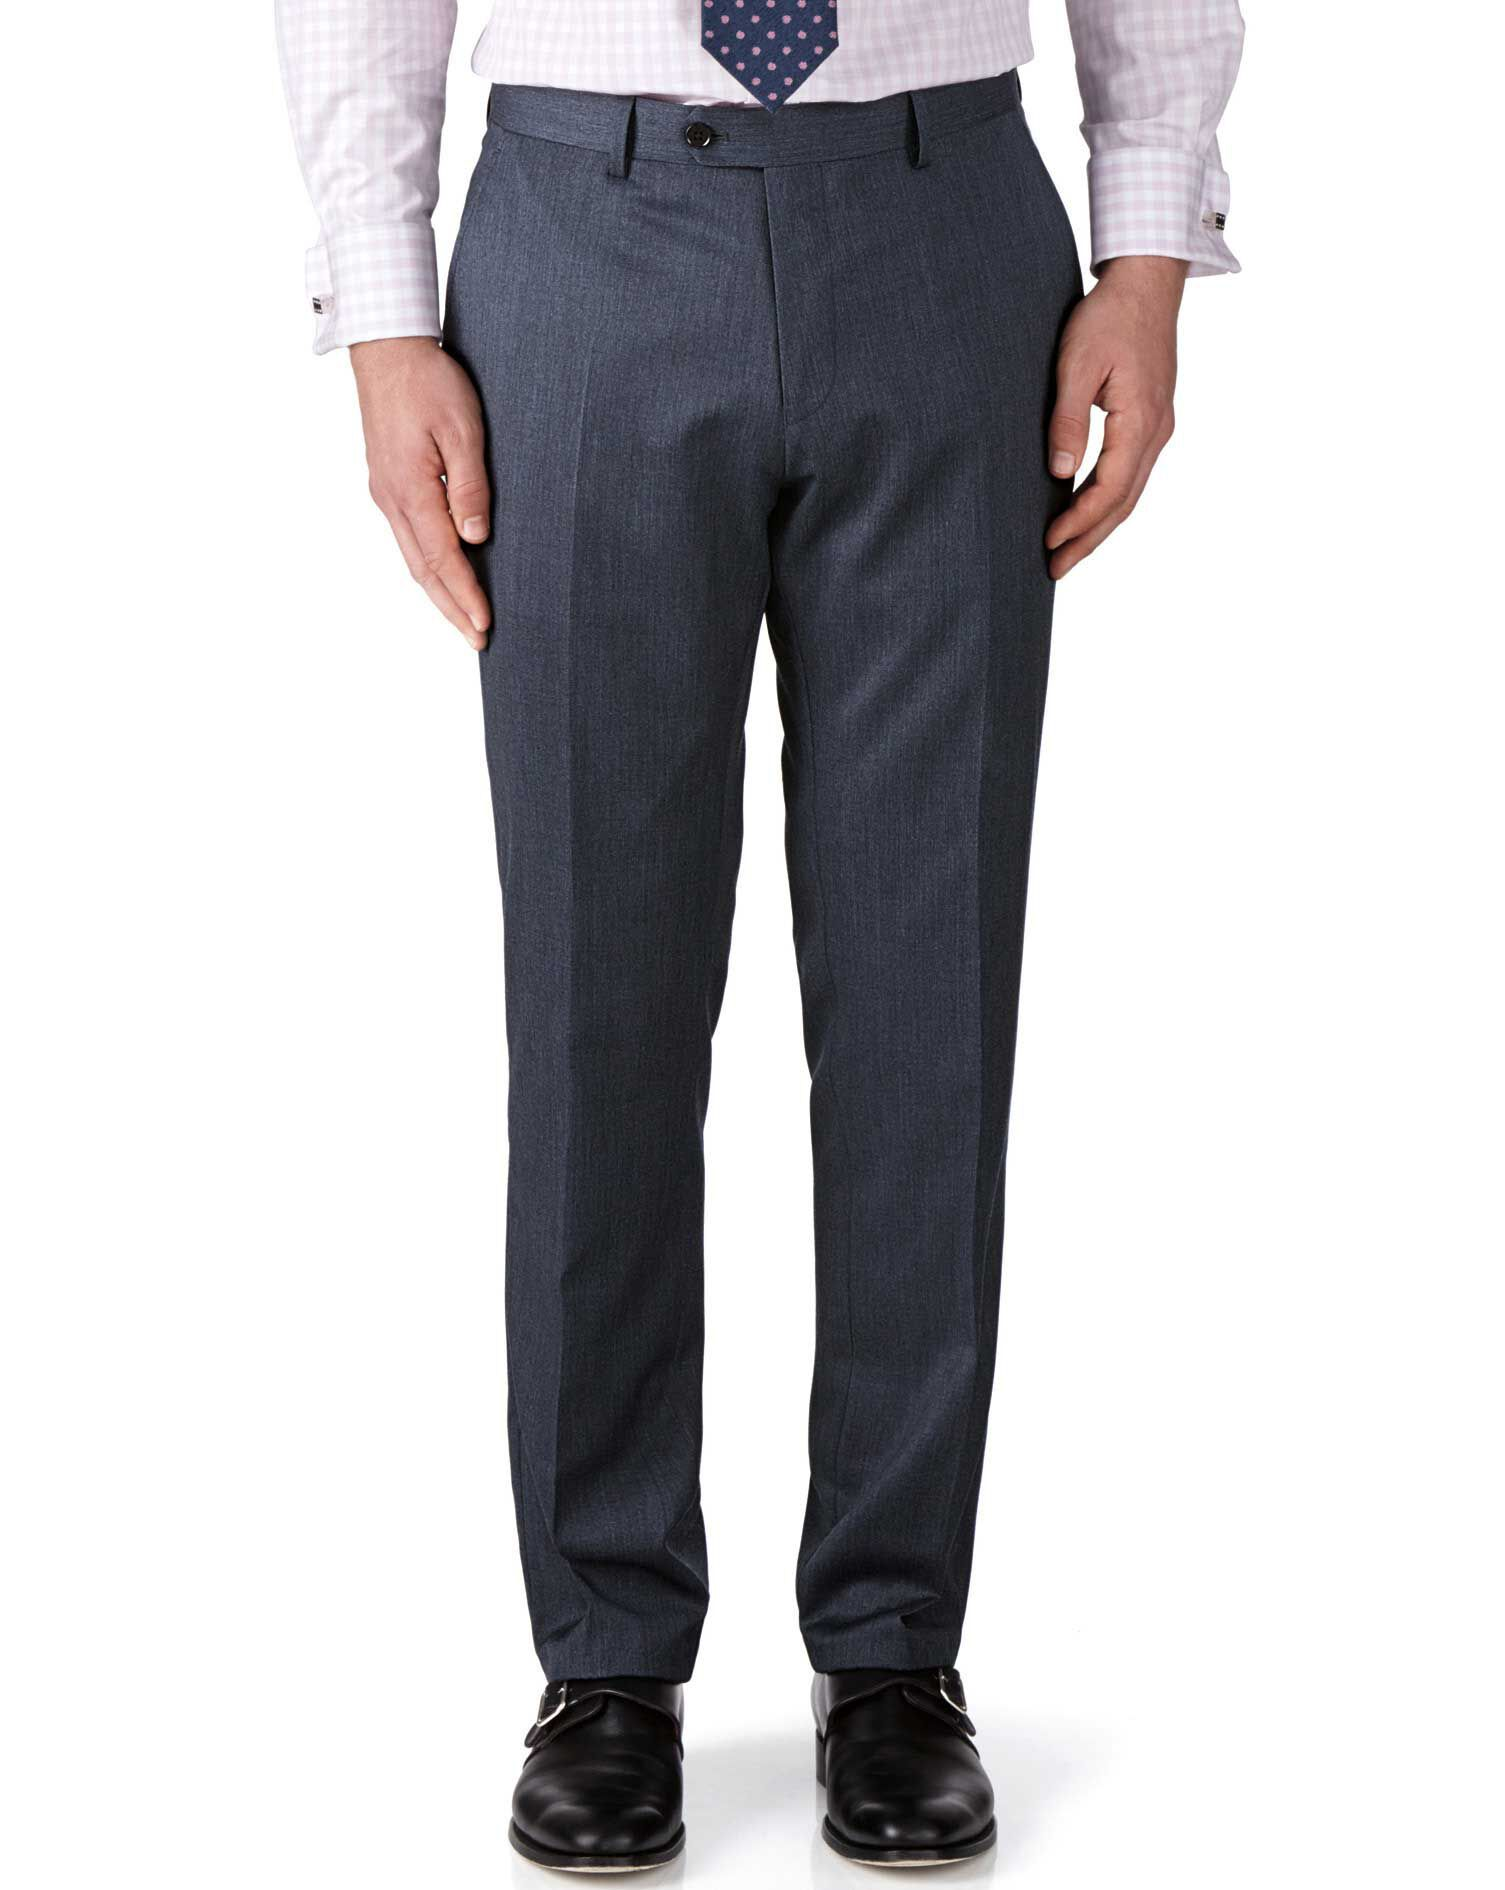 Airforce Blue Classic Fit Twill Business Suit Trousers Size W36 L32 by Charles Tyrwhitt